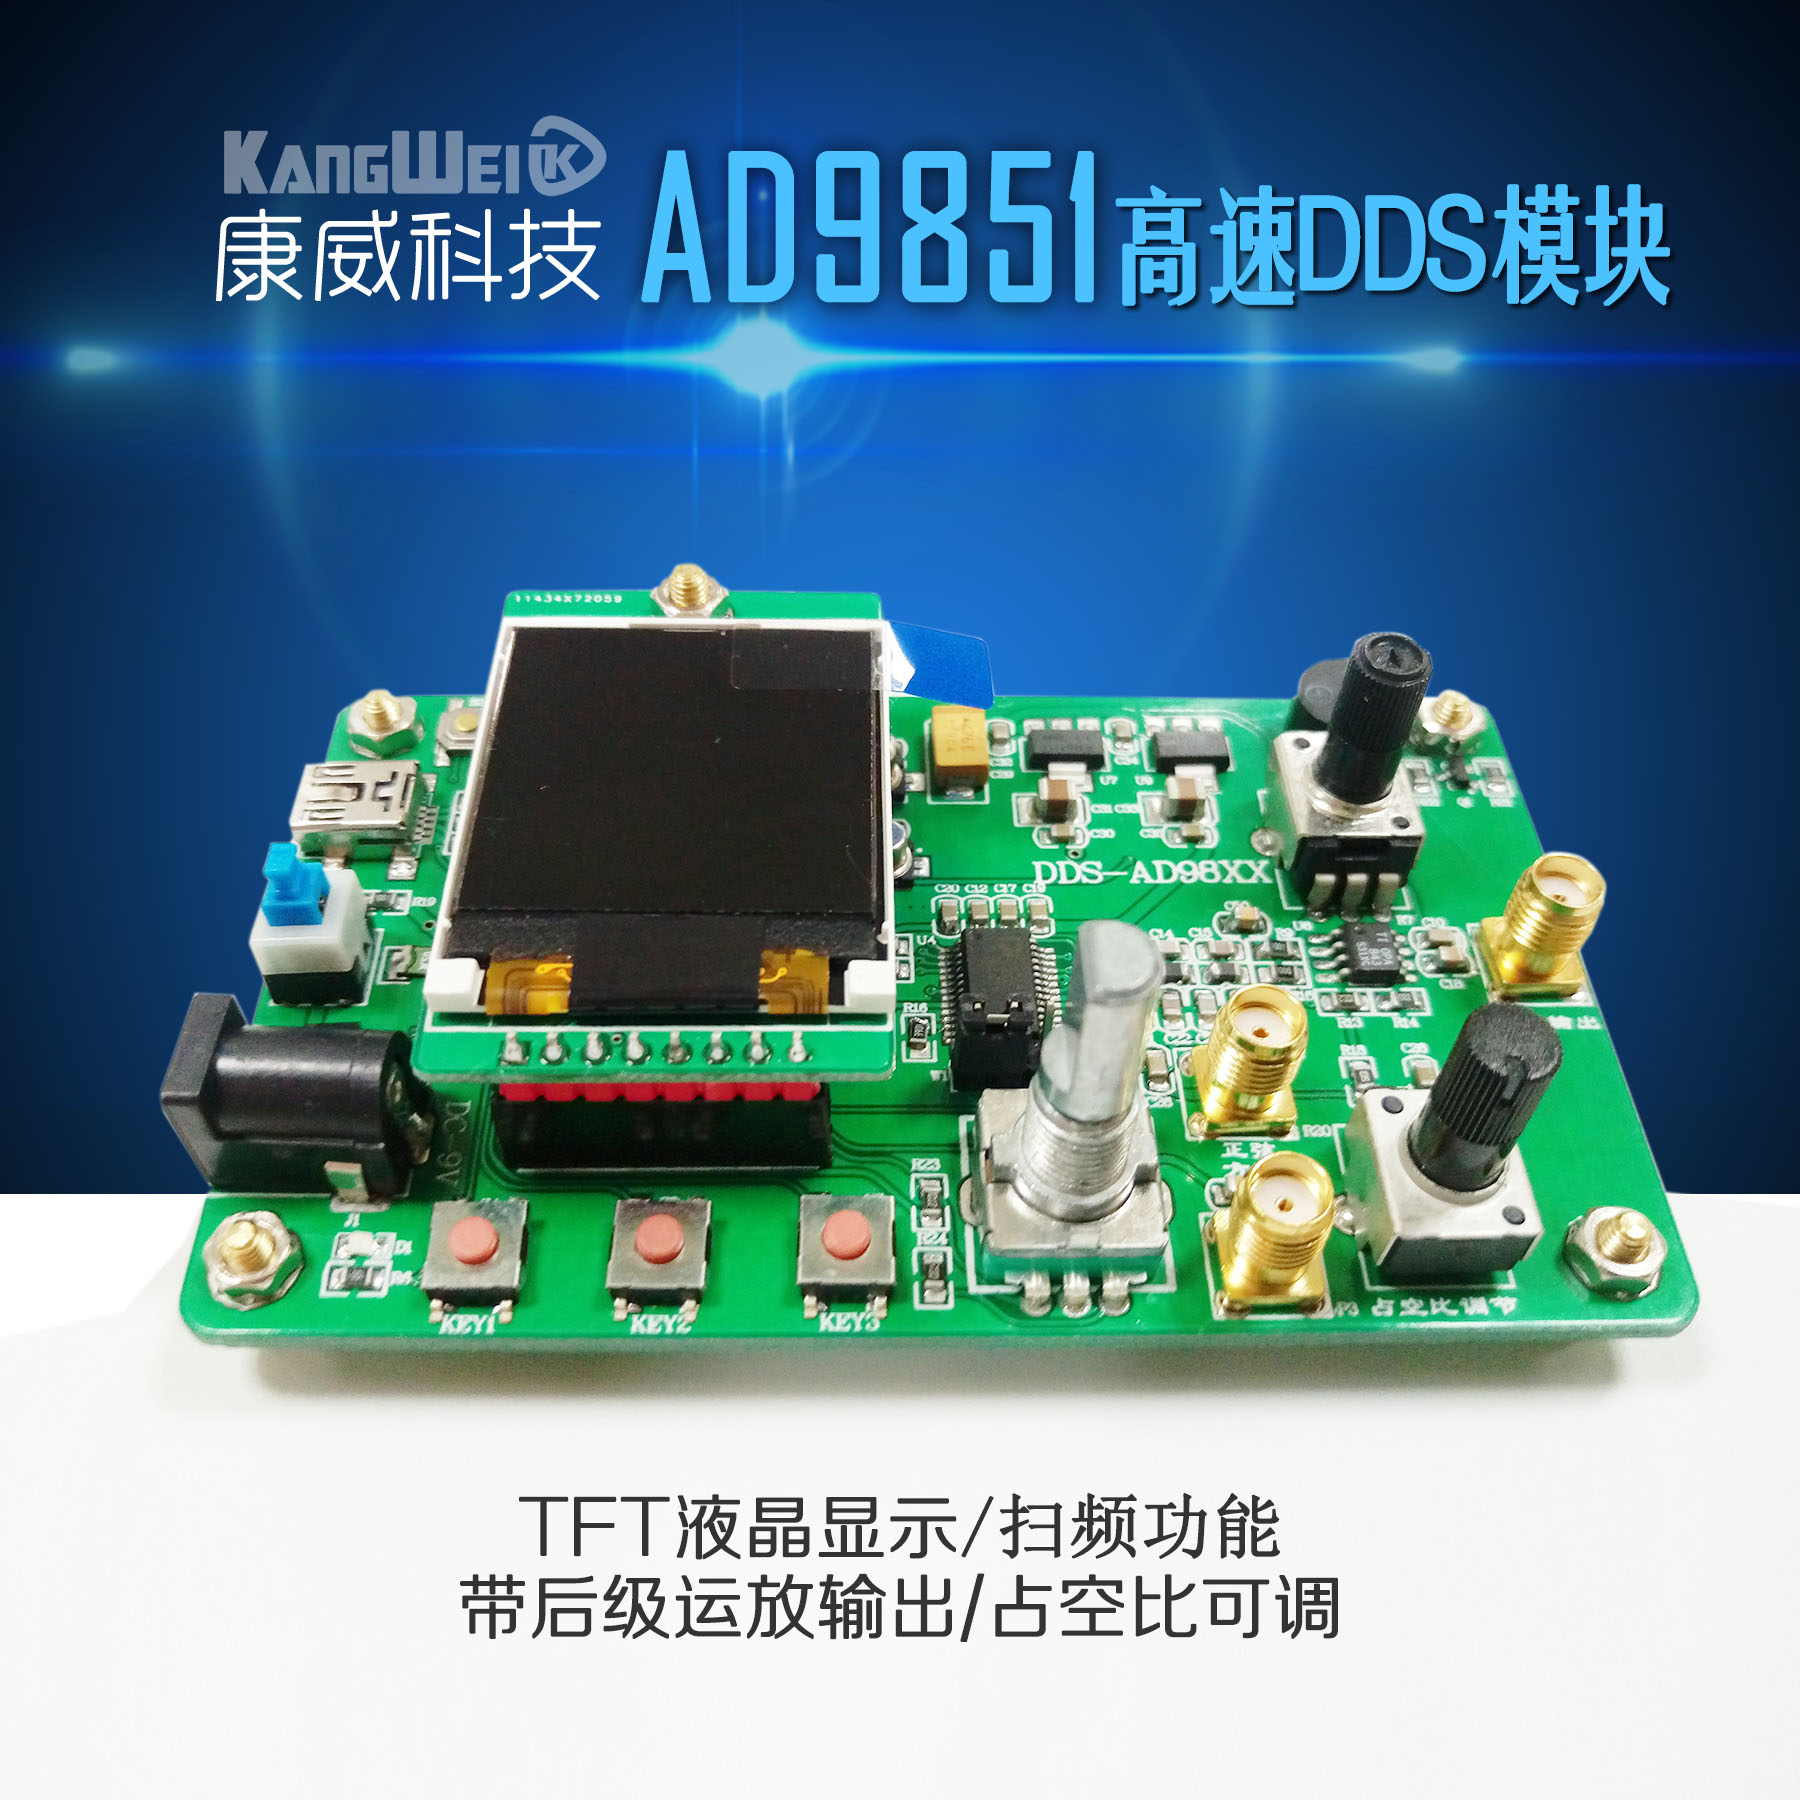 AD9851 High-speed DDS Module Function Signal Generator Sending Program Compatible with 9850 Sweep Function ad9850 ad9850brsz ad9851 ad9851brs ad9851brsz